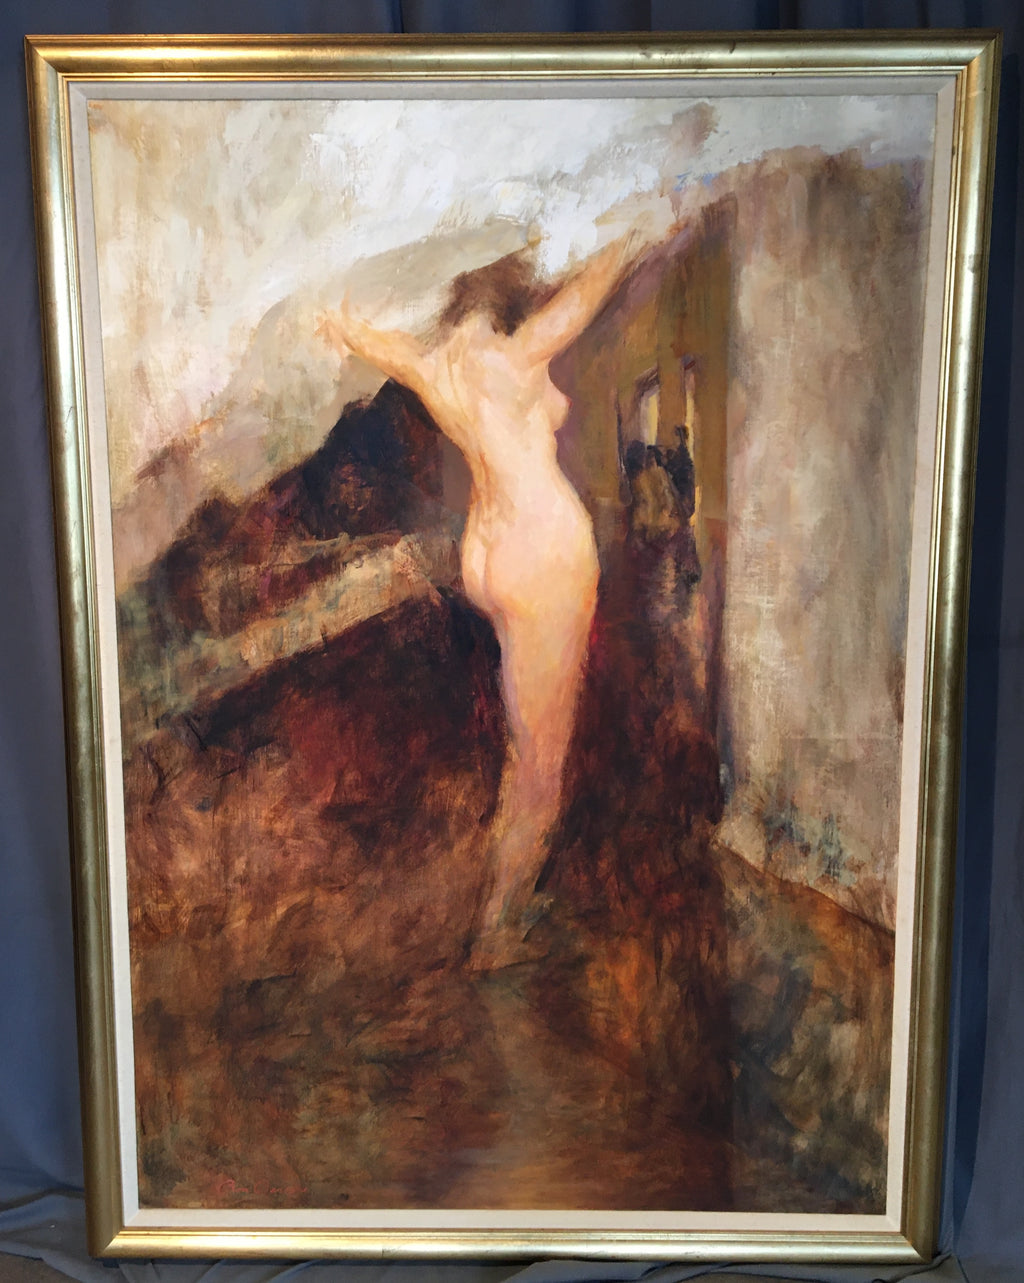 LARGE NUDE OIL PAINTING BY BARSANO